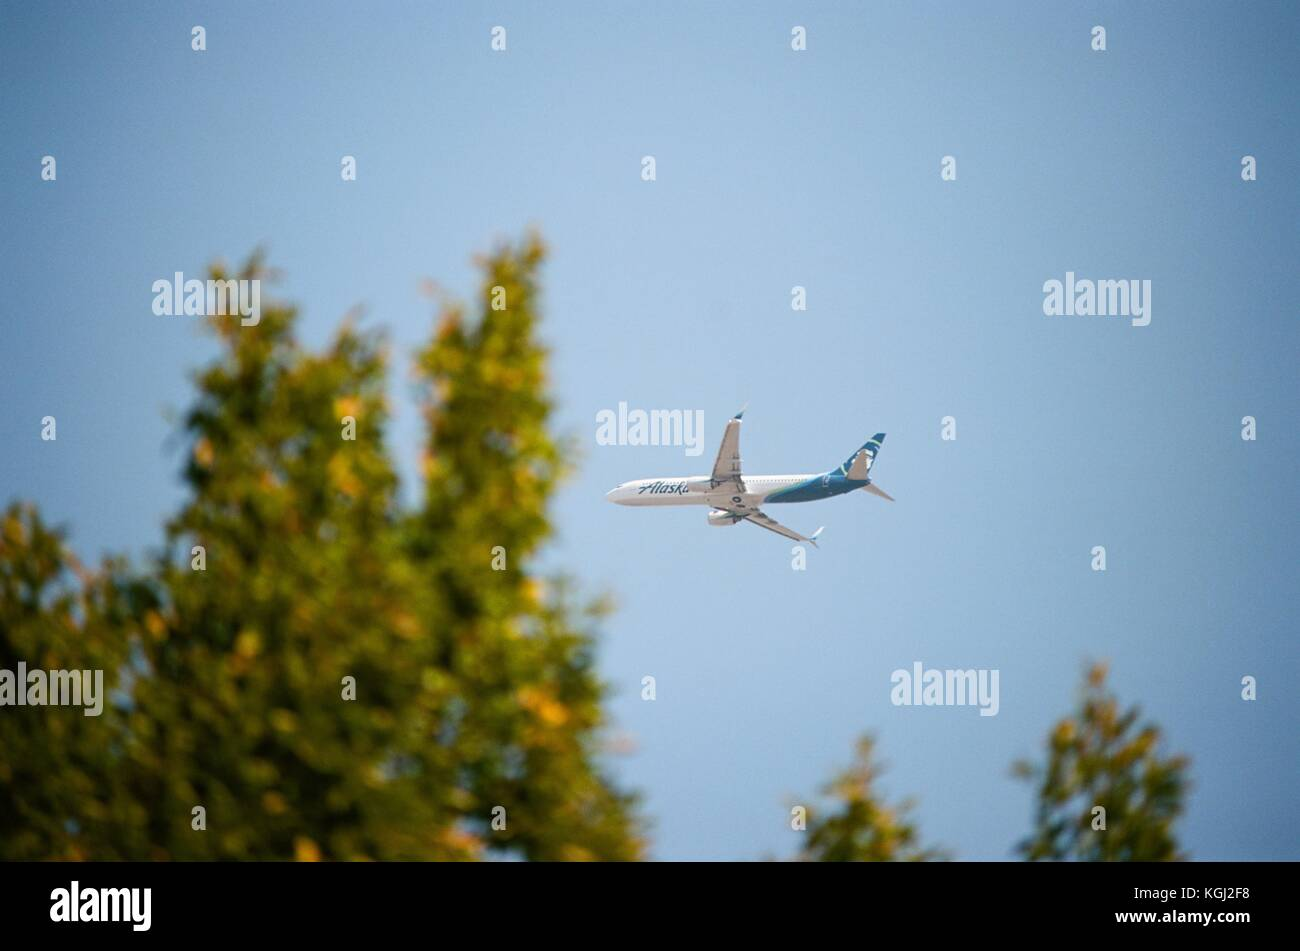 Alaska airlines stock photos alaska airlines stock images alamy jet aircraft for alaska airlines with logo visible flying over the silicon valley town buycottarizona Choice Image